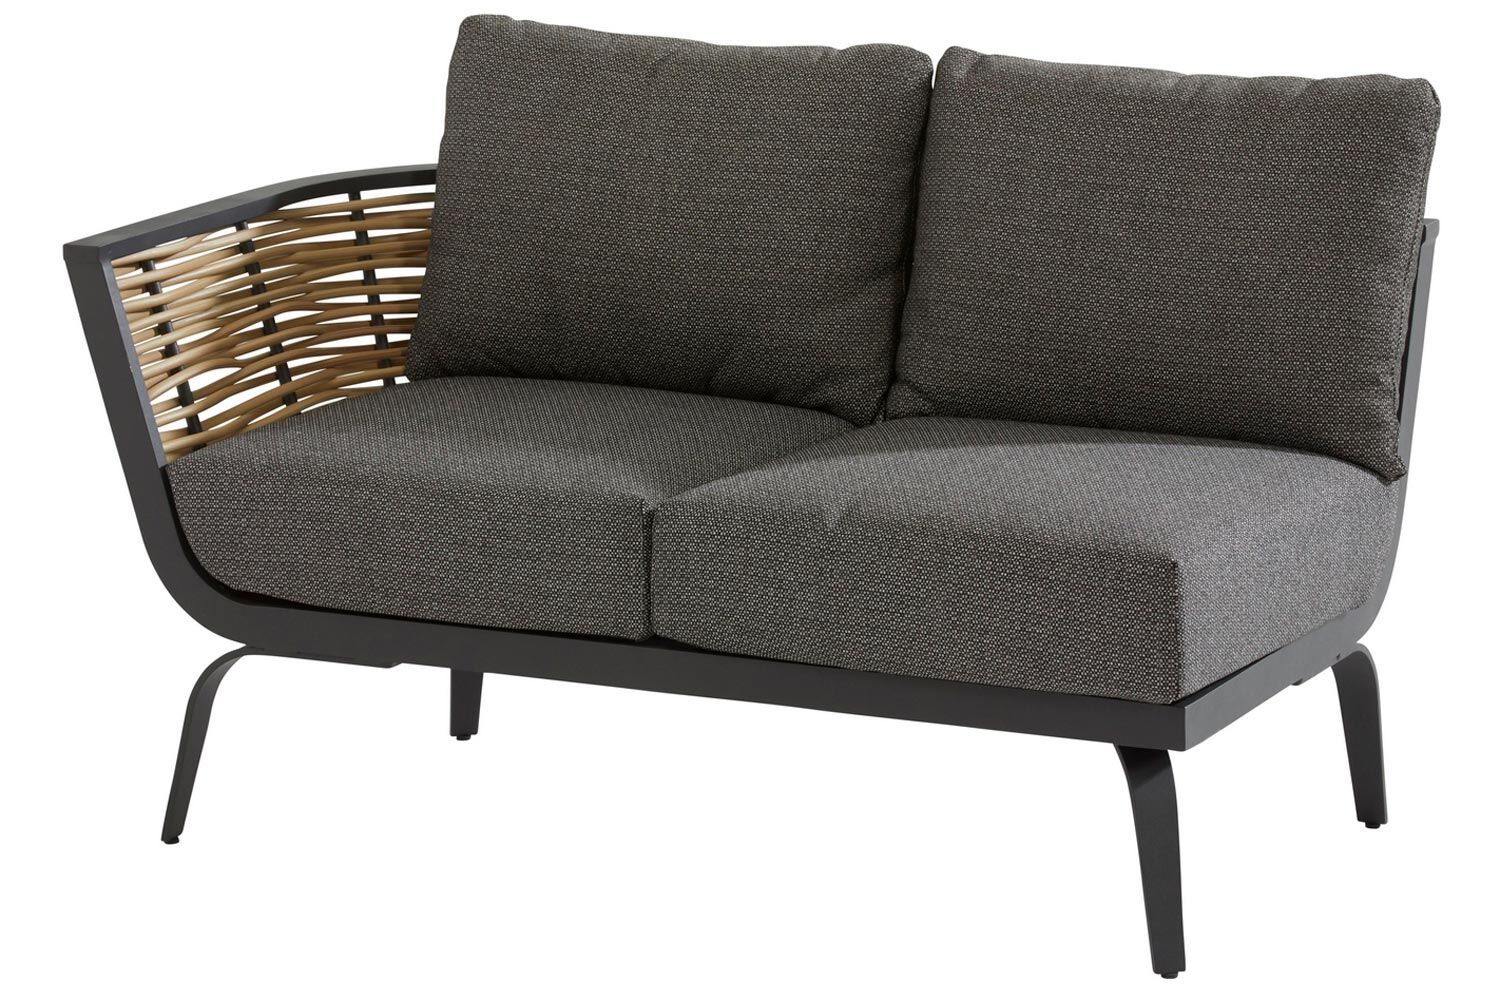 4 Seasons Outdoor Antibes 2 seater bench right arm with cushion and 3 pillows